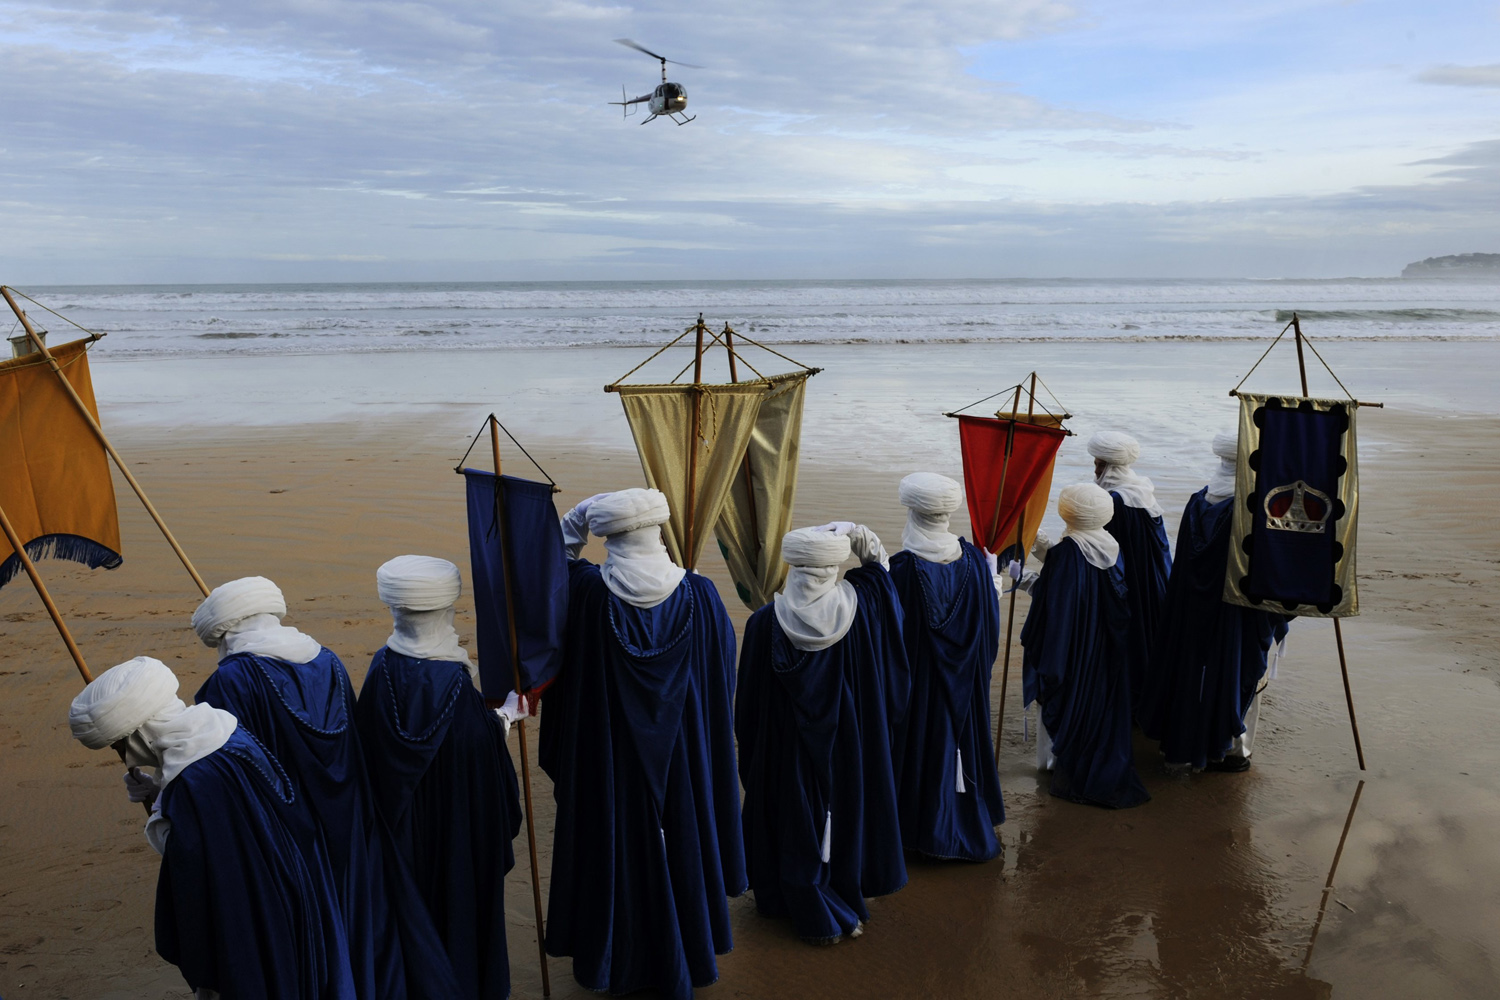 Jan. 5, 2014. People role playing as members of the royal entourage await the arrival of the Three Wise Men by helicopter, at San Lorenzo beach in Gijon.